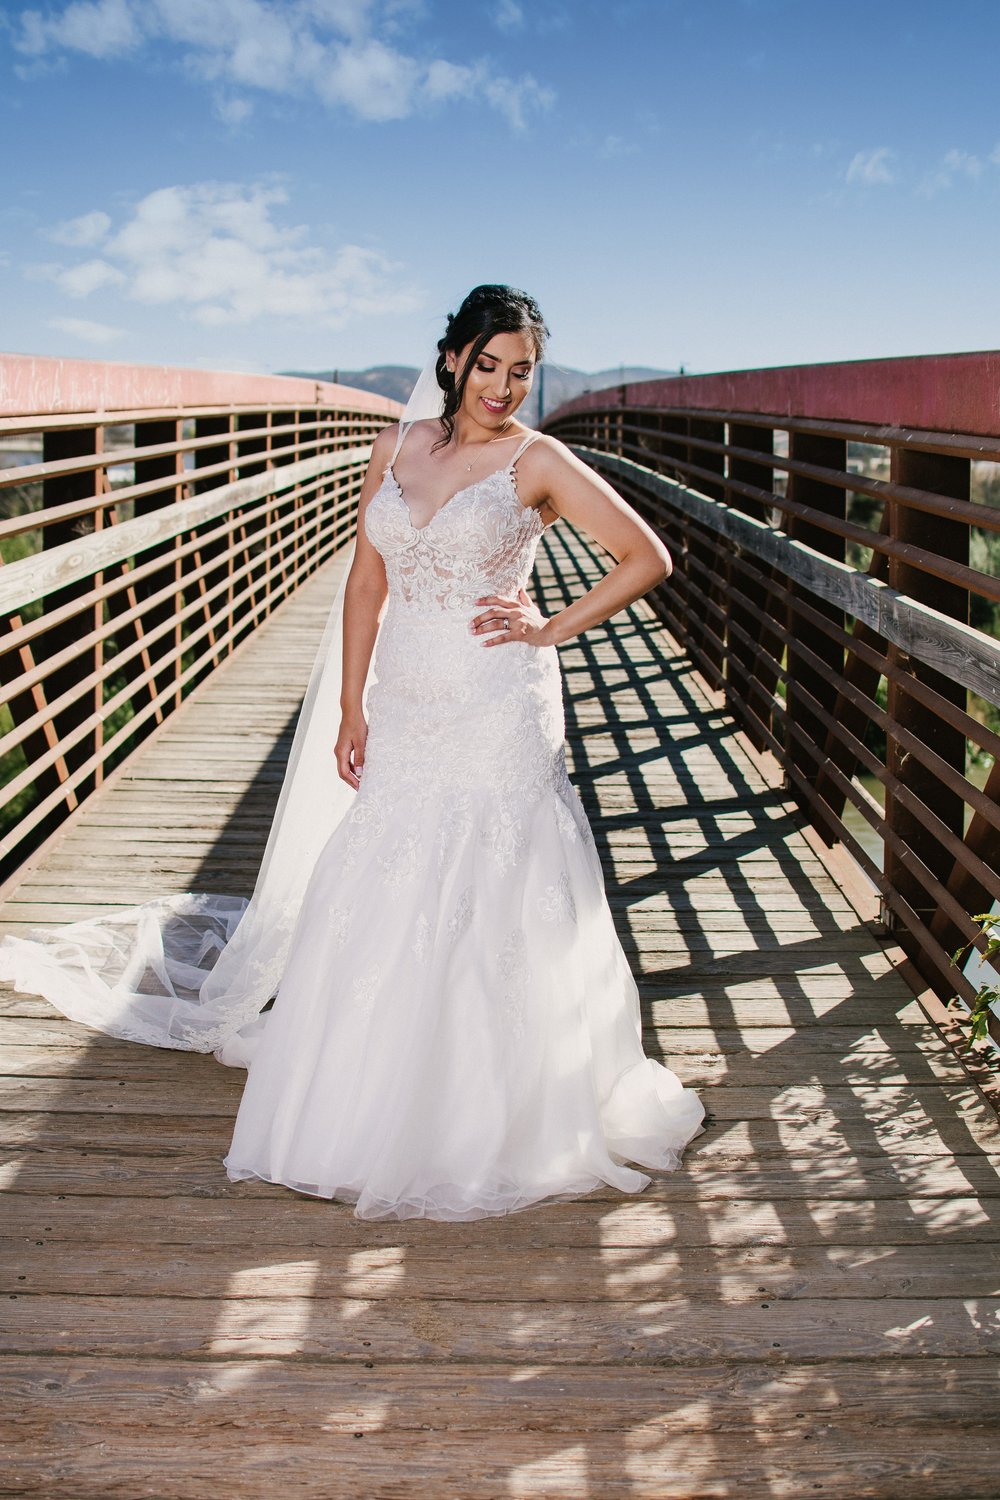 monterey-wedding-photographer-king-city-crystal-ivan-1-min.jpg